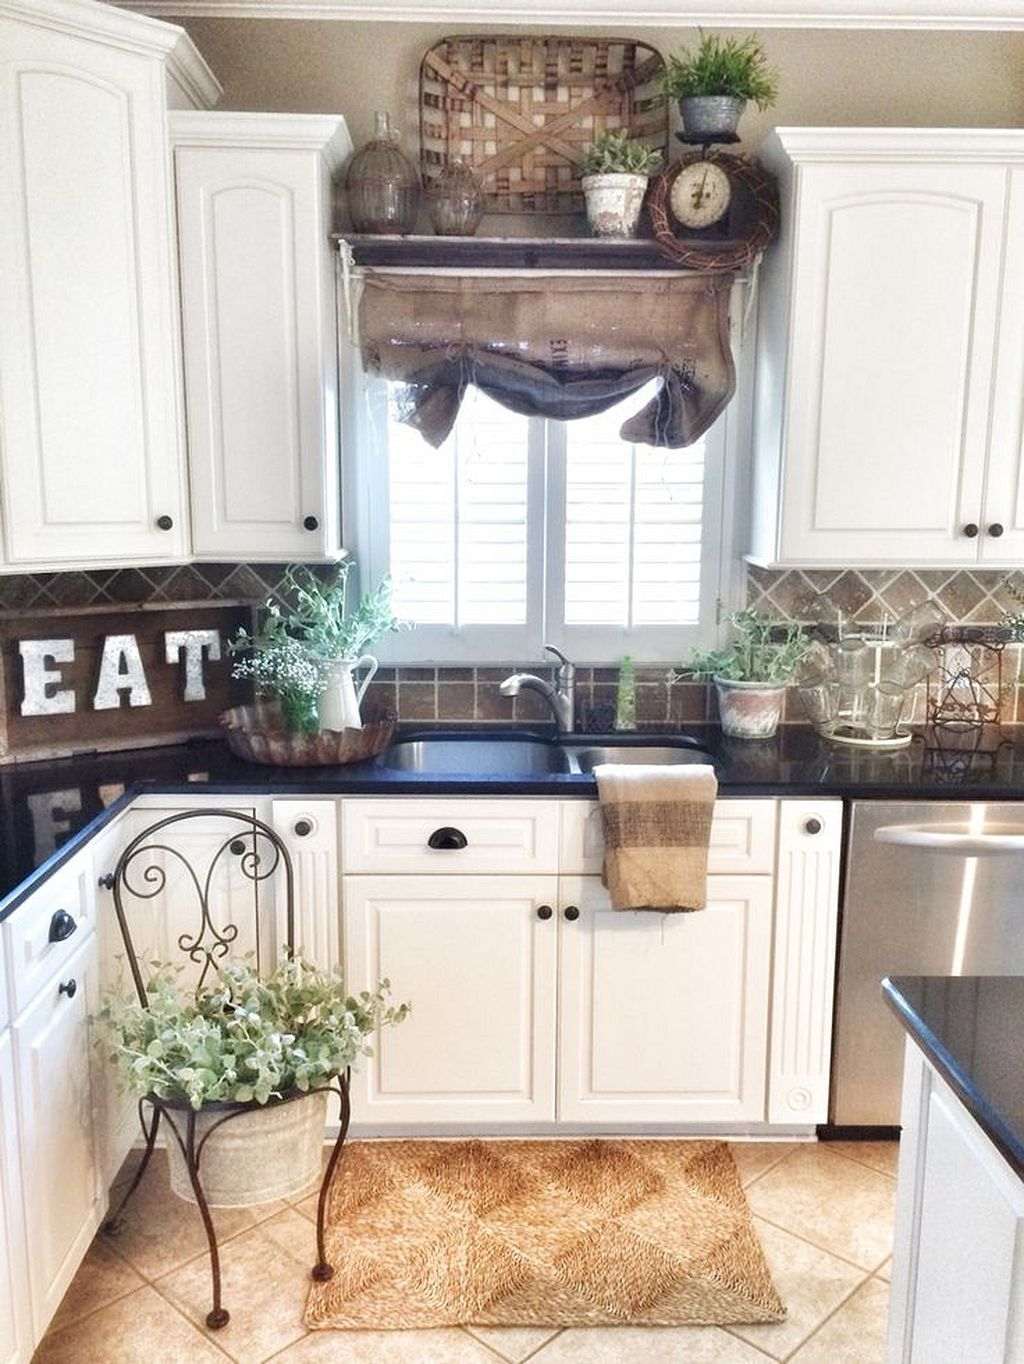 50 Fun Kitchen Decorating Ideas to Cheer Your Life